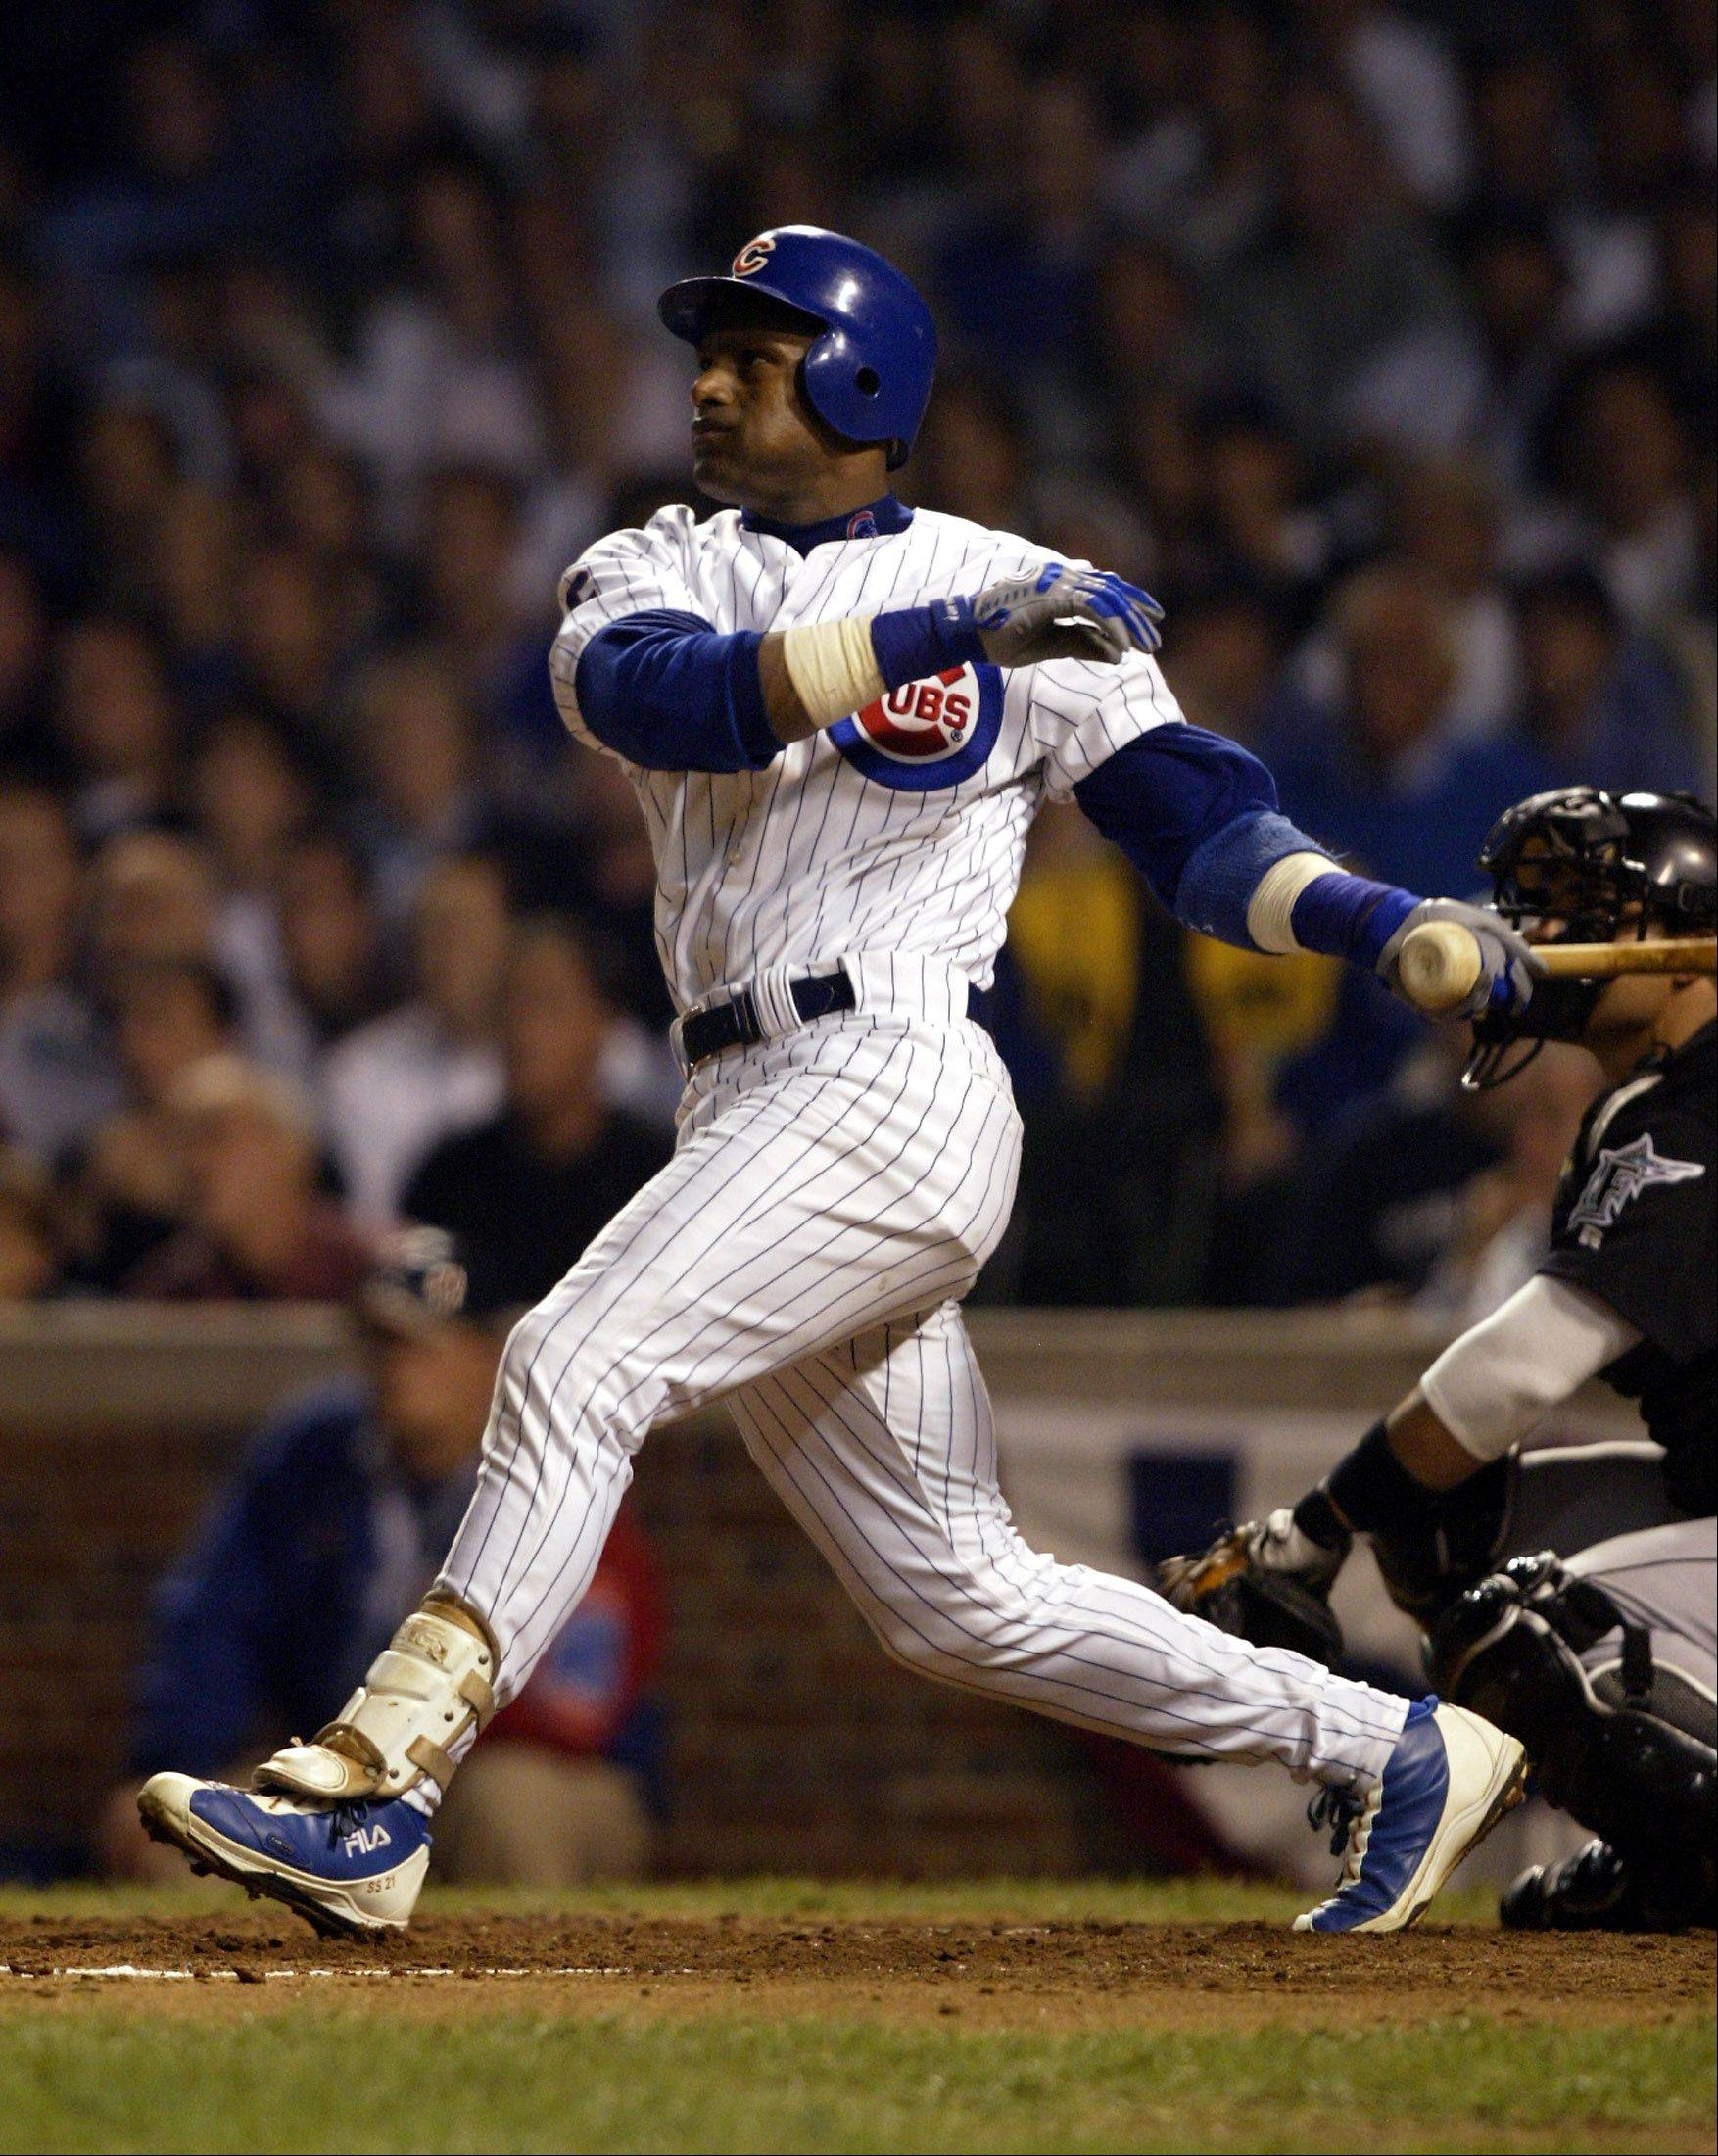 Former Cub right fielder Sammy Sosa is on the Baseball Hall of Fame ballot for the first time.